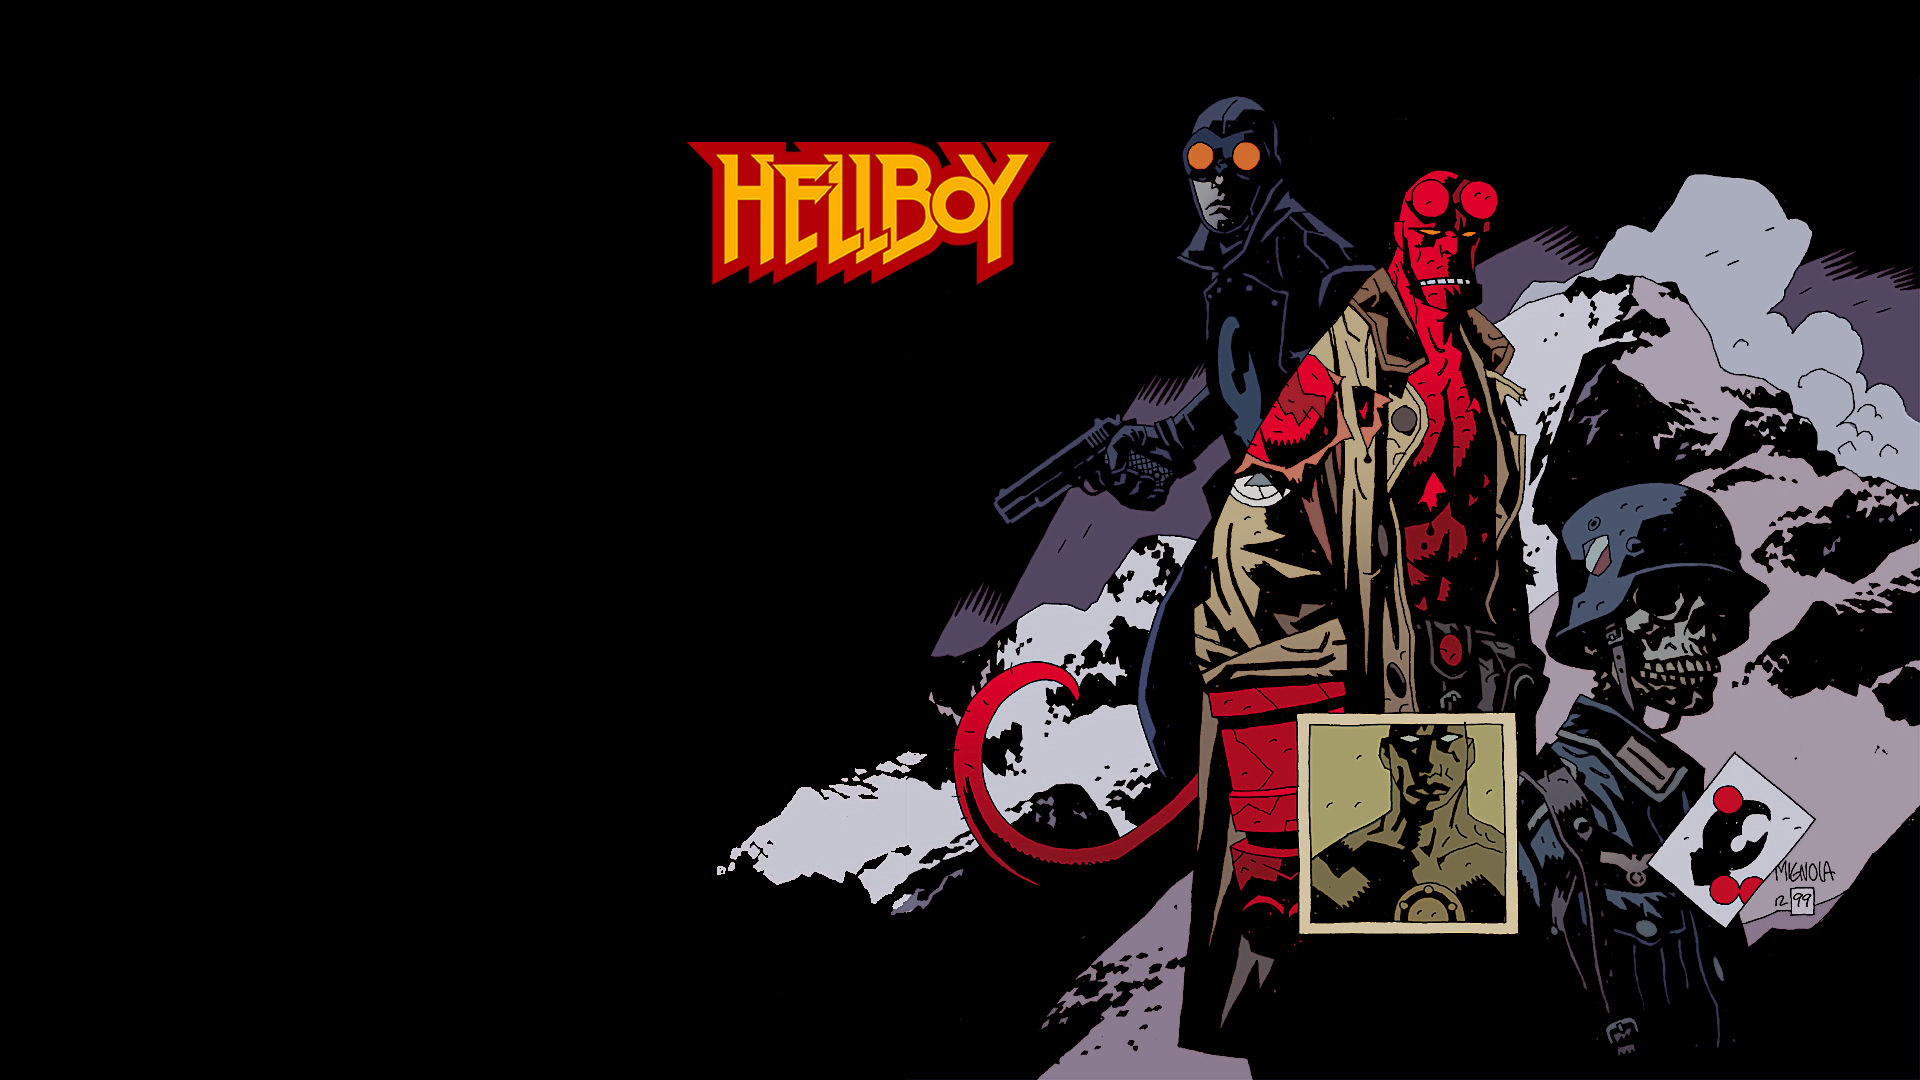 Artistic Hellboy Wallpapers Artistic Hellboy Myspace Backgrounds 1920x1080